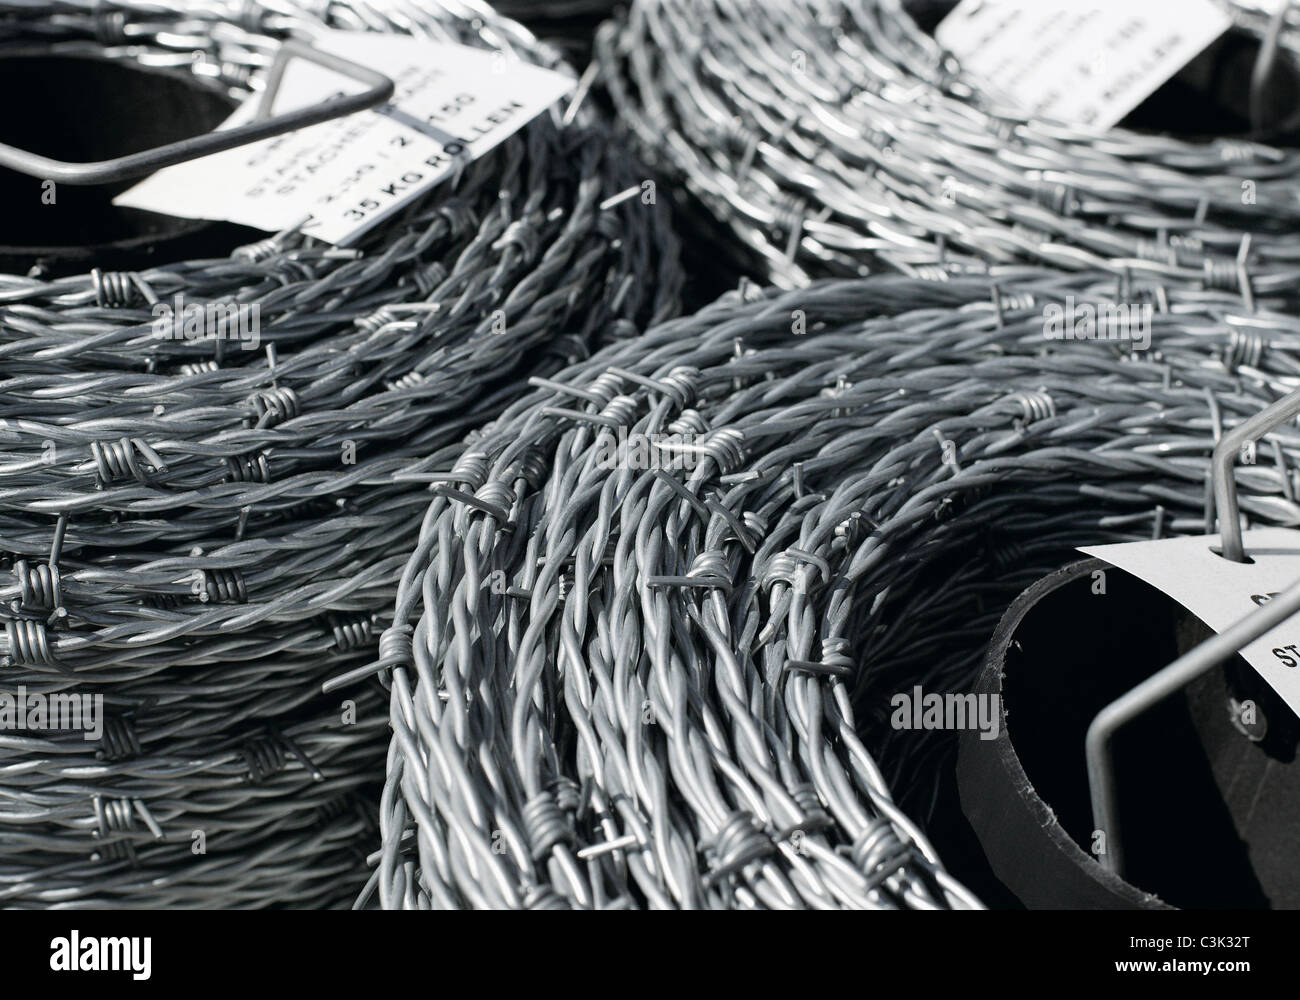 Coils of barb wire, close up Stock Photo: 36684224 - Alamy